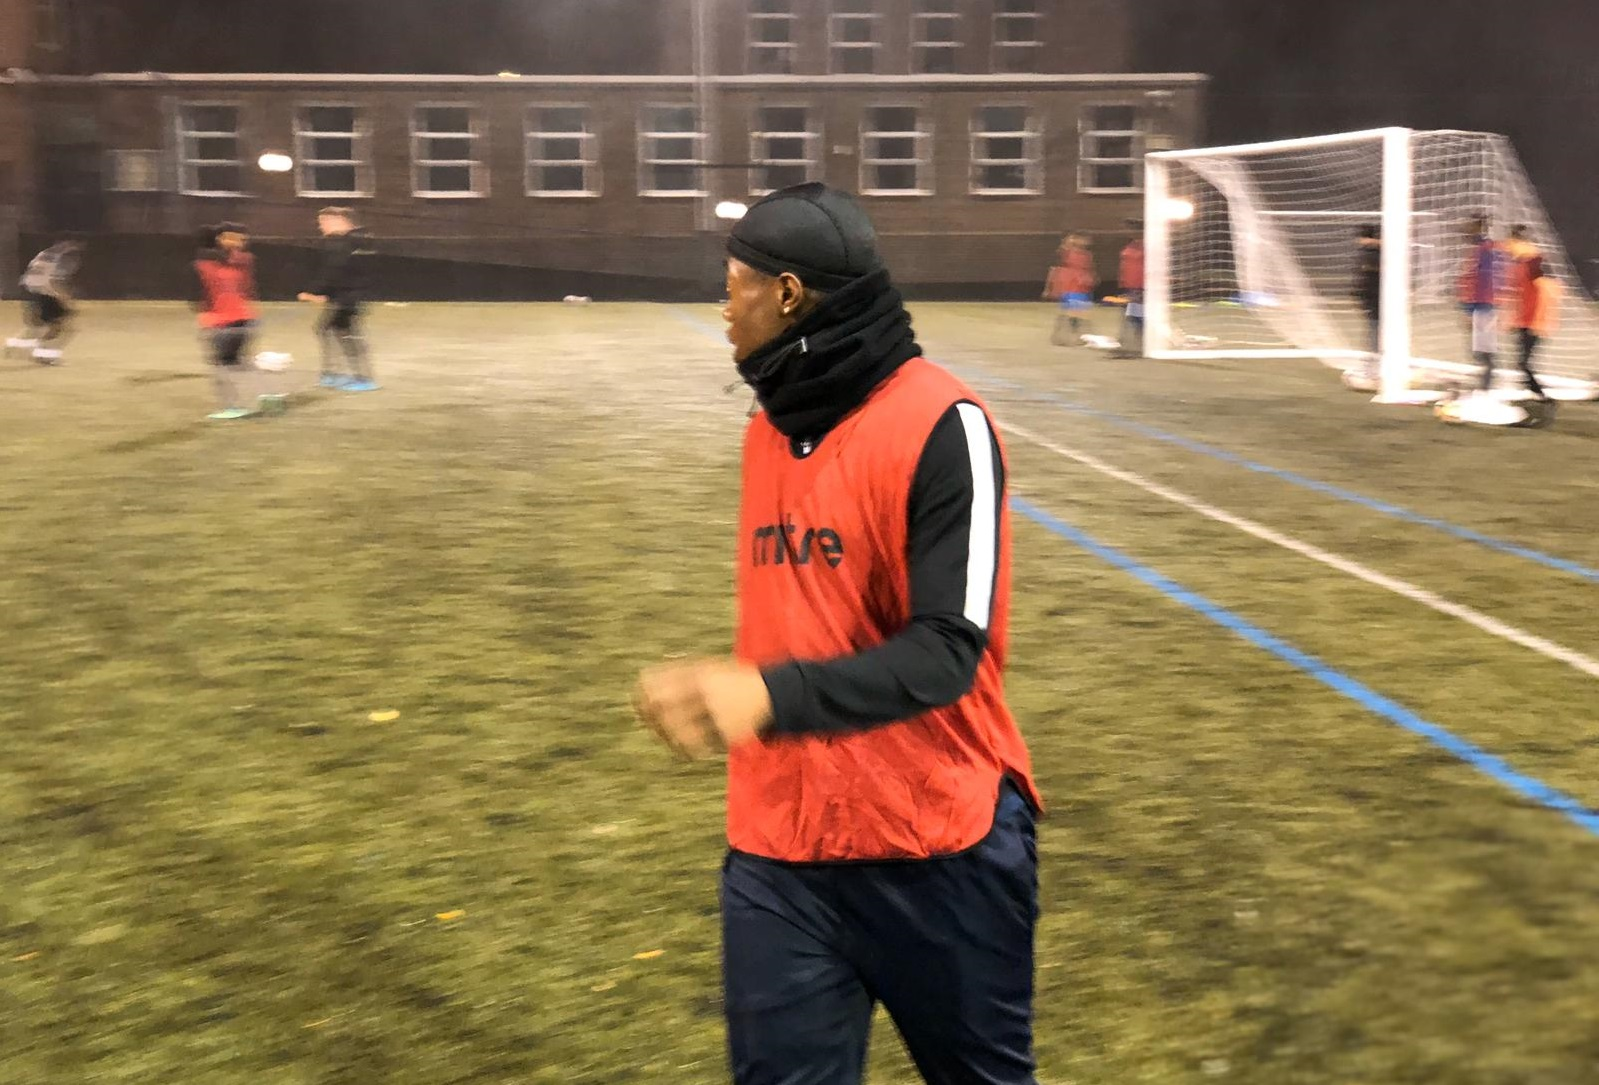 Improve Your Football Skills with Kinetic